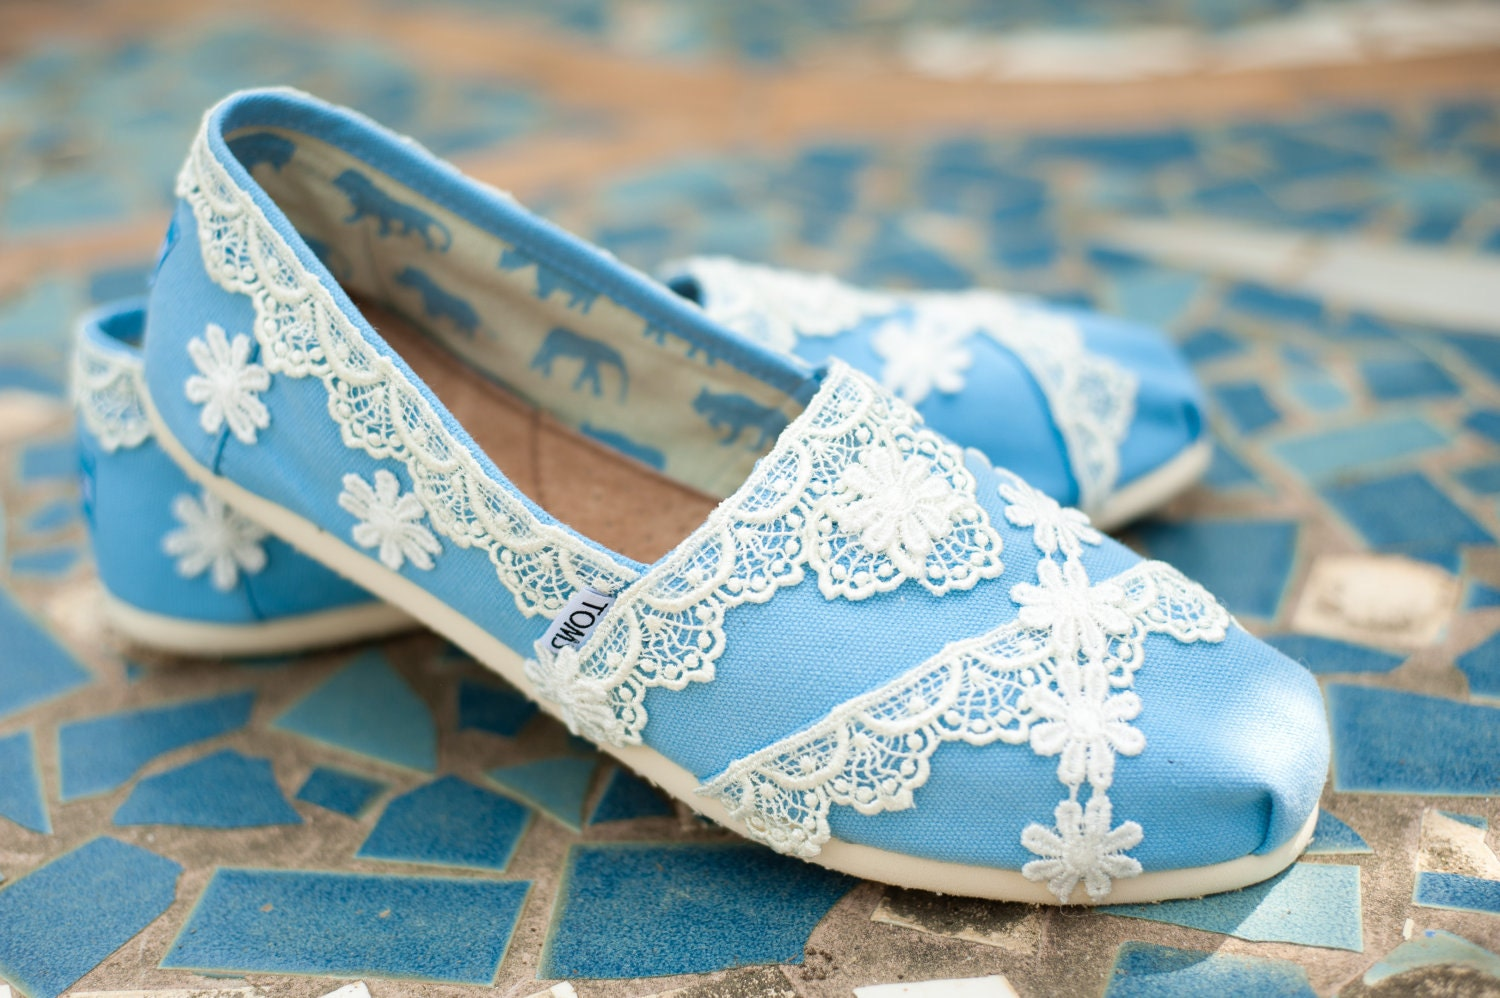 About TOMS Wedding Shoes. TOMS wedding shoes collection has something for everyone. Sandals are the perfect wedding shoe for the beach bride or destination wedding. Lace slip-ons are perfect women's wedding shoes for dancing the night away. Walk down the aisle in TOMS wedding wedges.